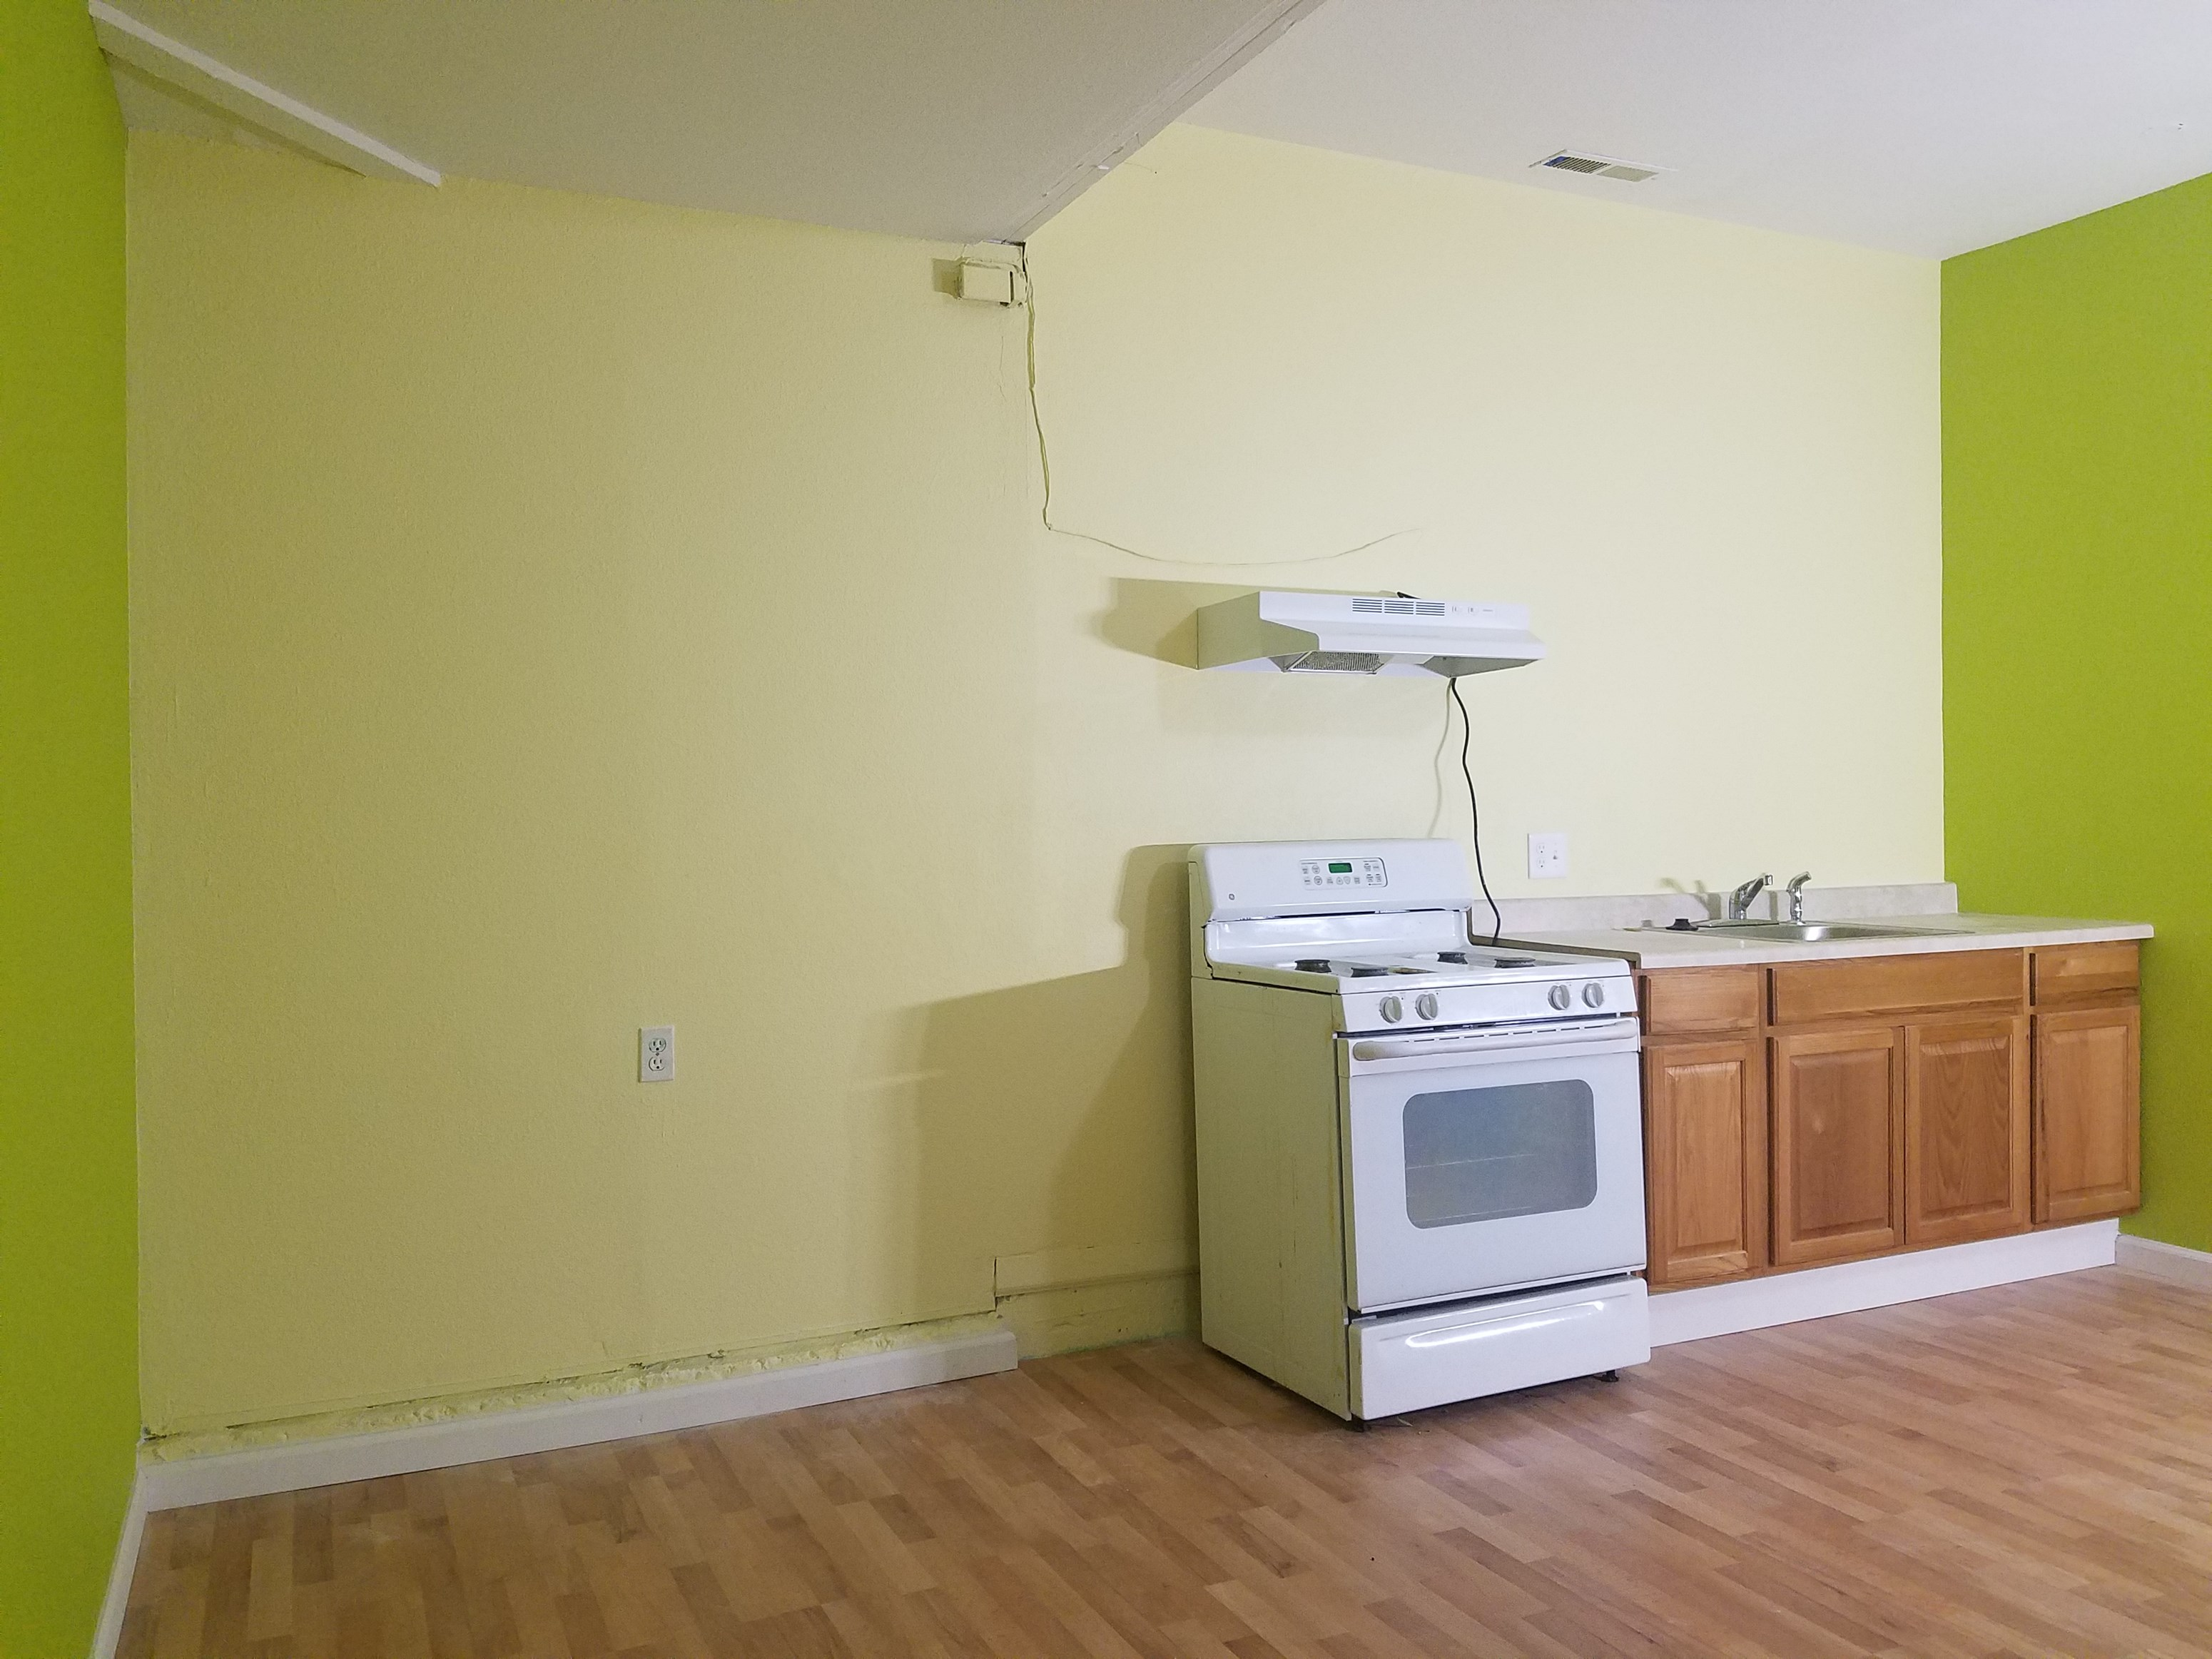 Rooms for Rent San Jose, CA – Apartments, House, Commercial Space ...